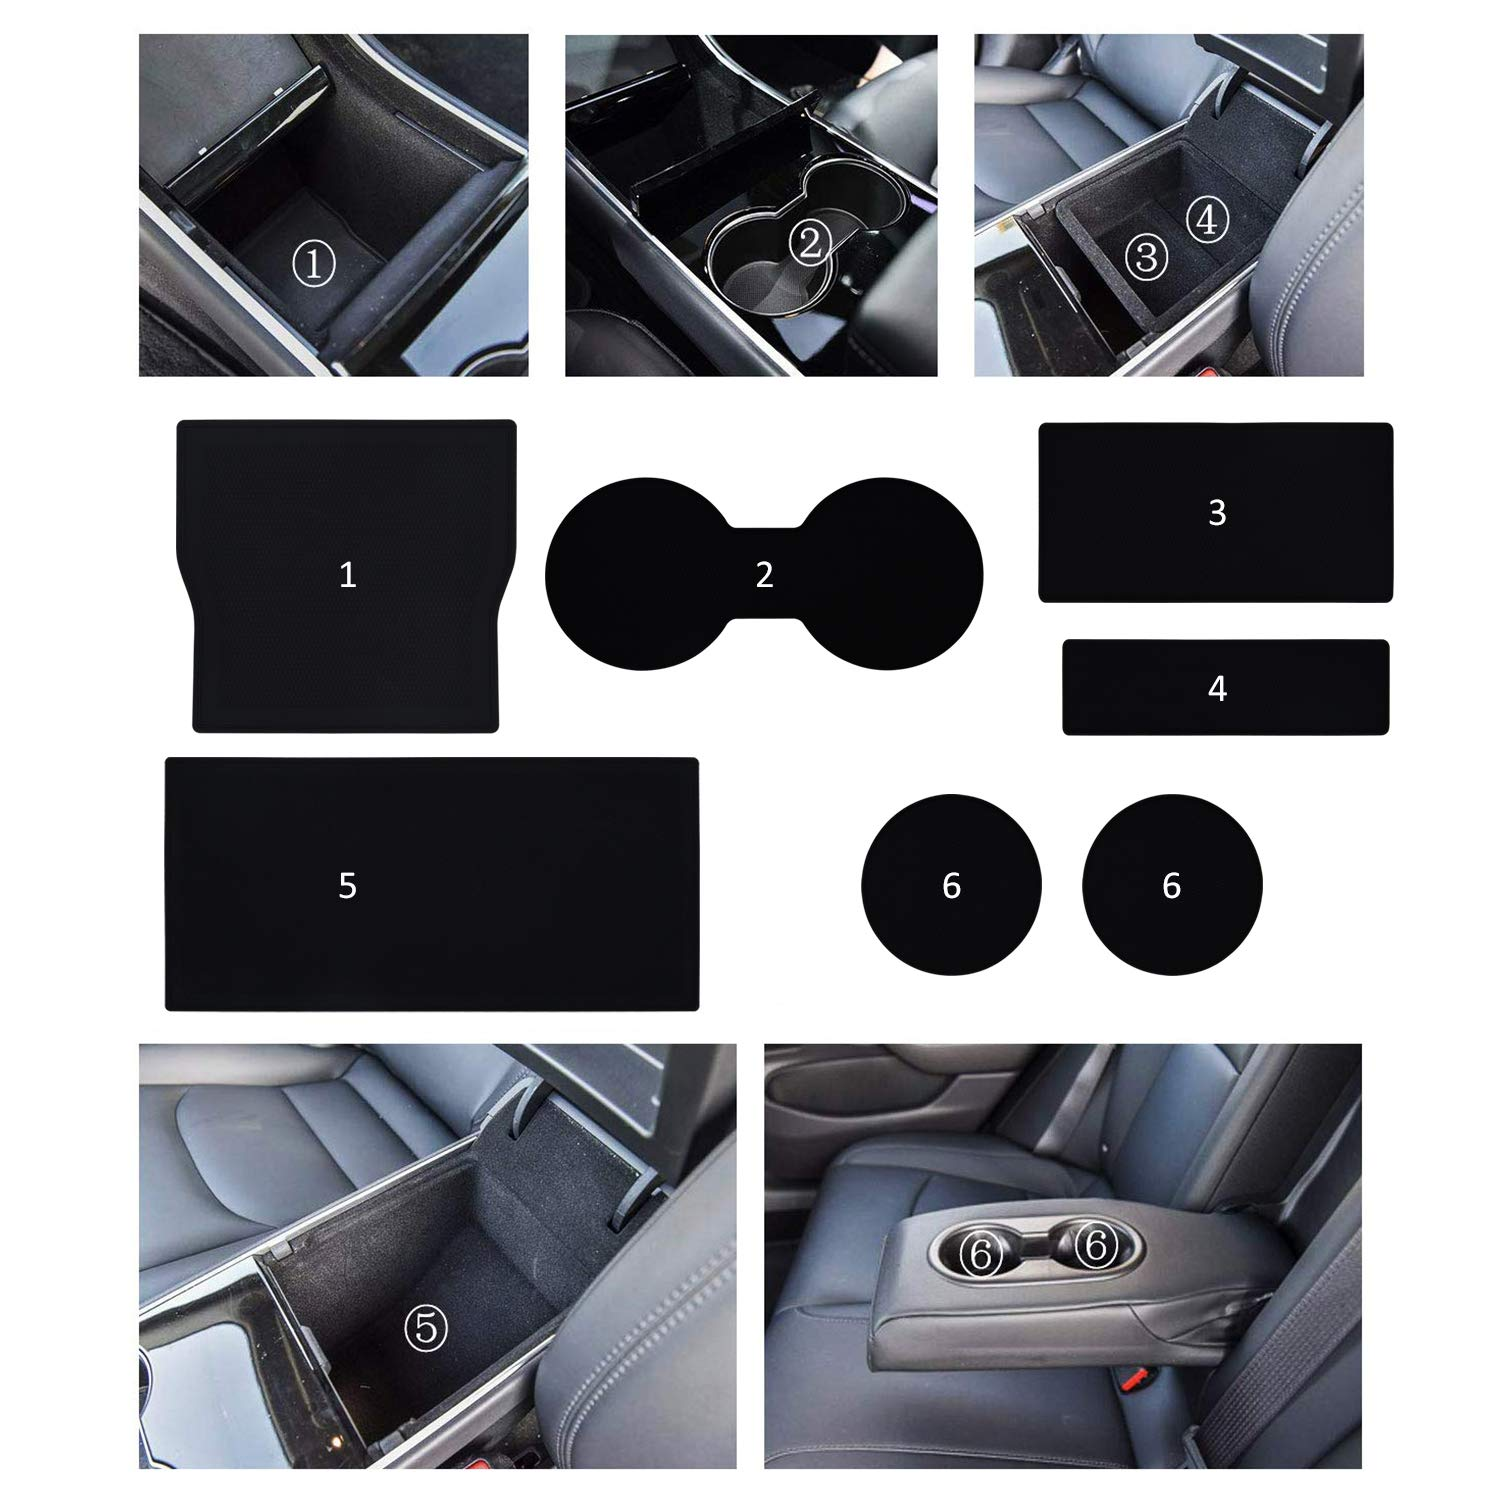 BMZX Model 3 Cup Holder Liner Custom Fit Cup and Center Console Liner Acessories for Model 3 2017 2018 2019 7-pc Set